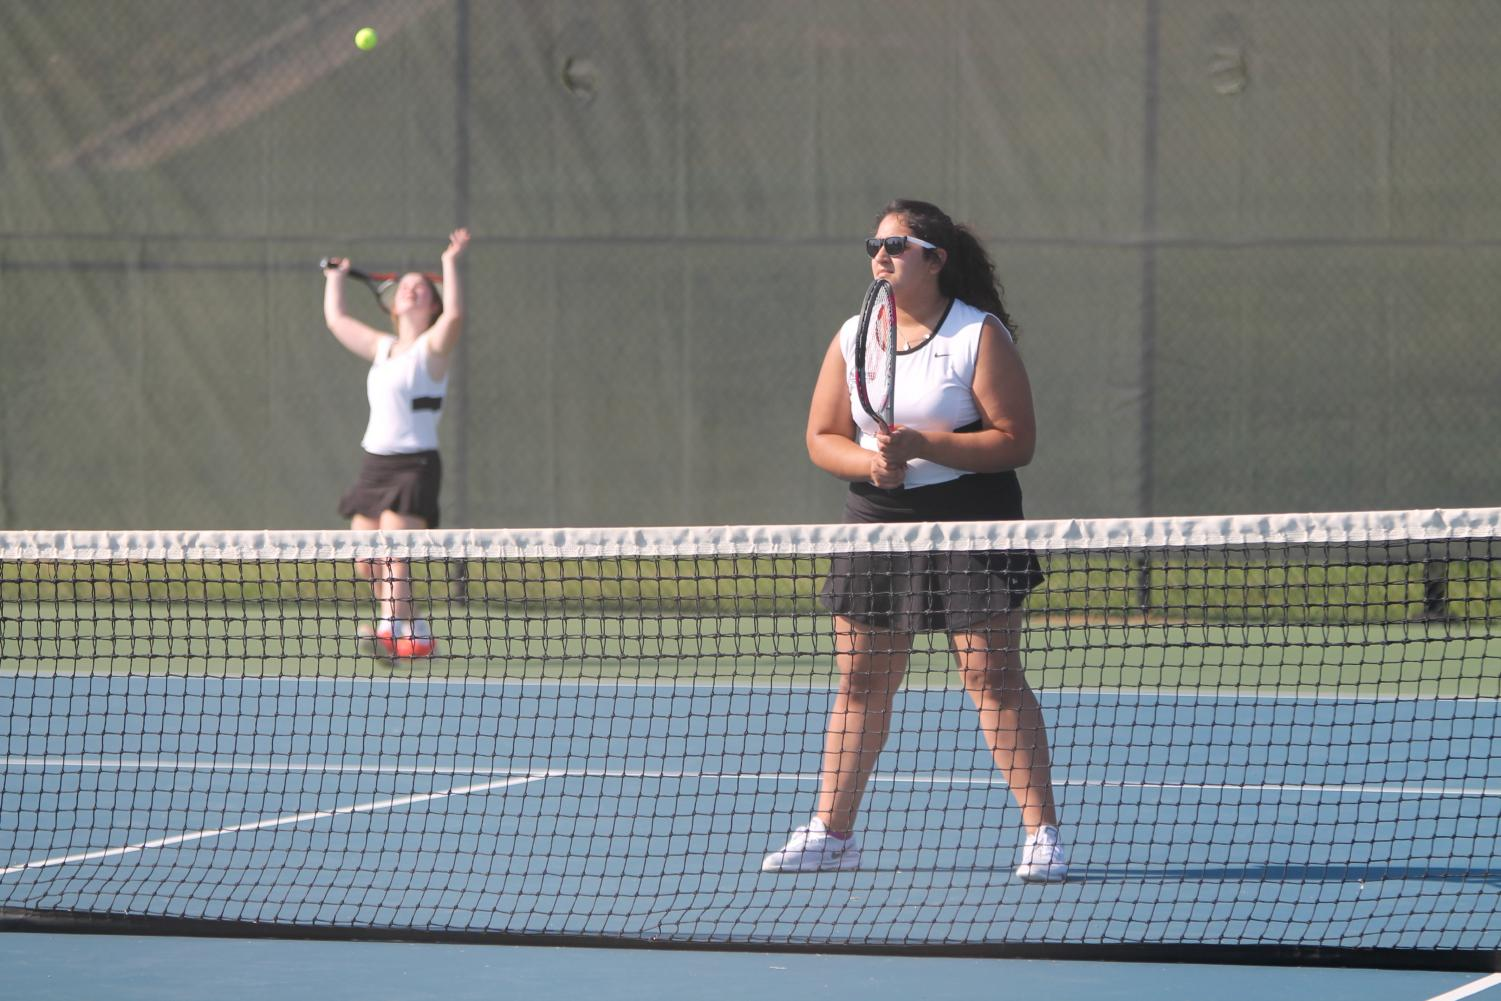 Aliza Ahmed (front) plays in a doubles match with her tennis partner.